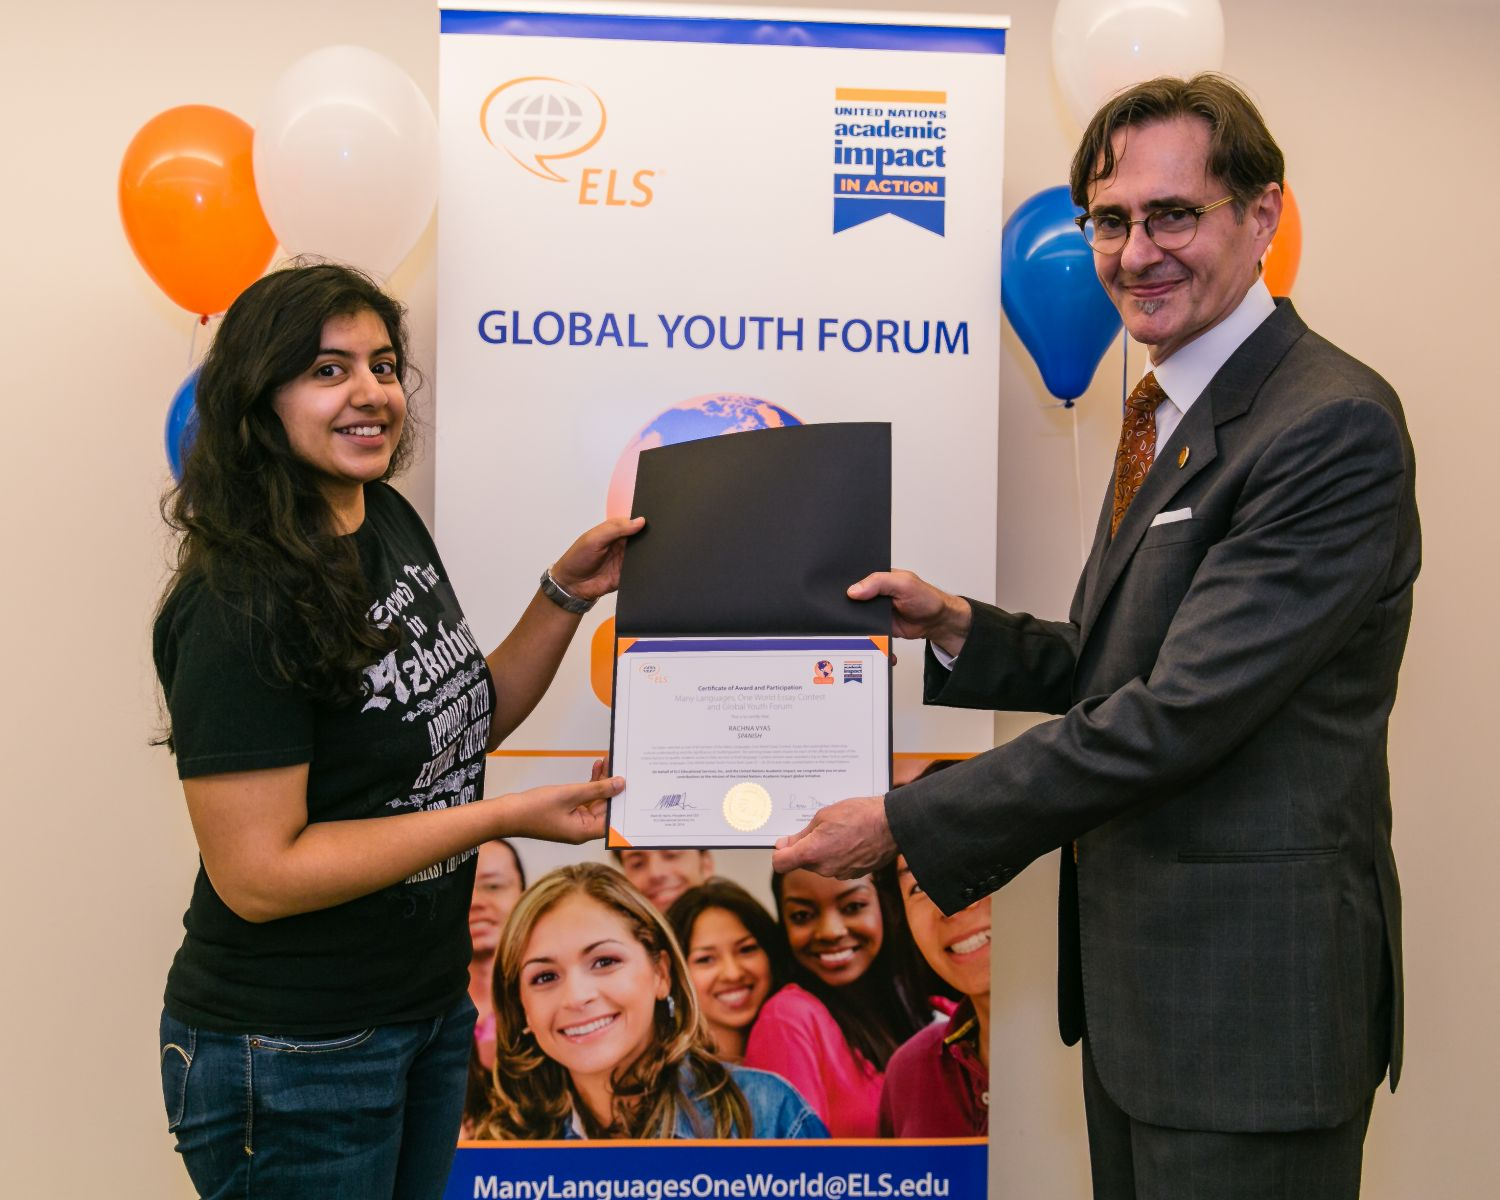 un academic impact els essay contest and global youth forum  un academic impact els essay contest and global youth forum 2015 for students fully funded